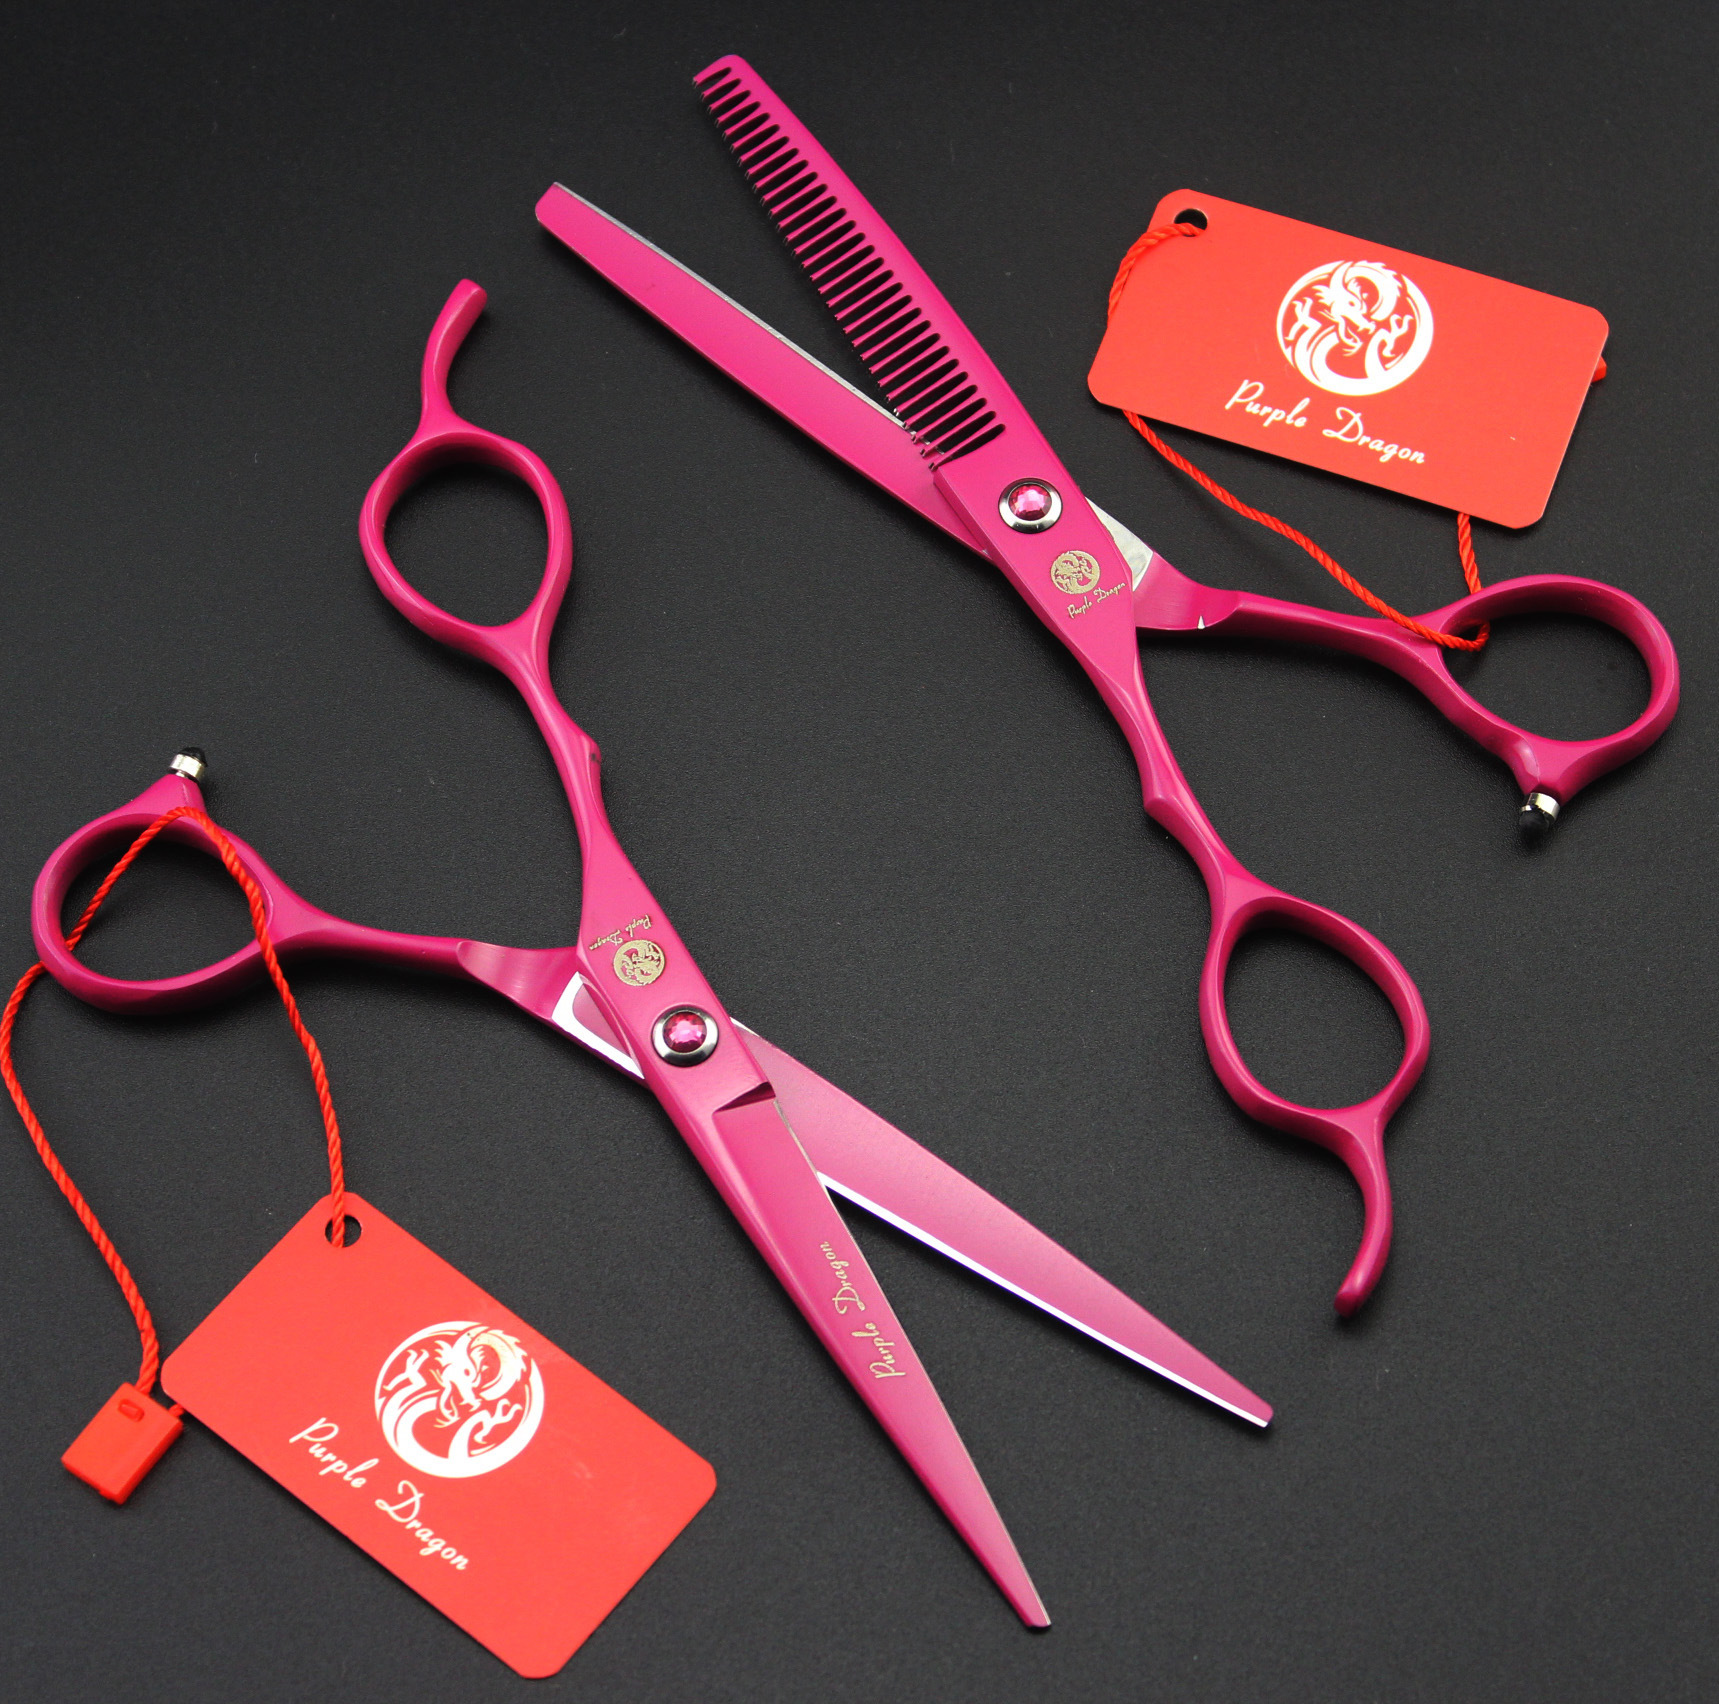 6.0  2Pcs Left Hand Shears Barber Hair Scissors Japan 440C Hairdressing 2pcs left